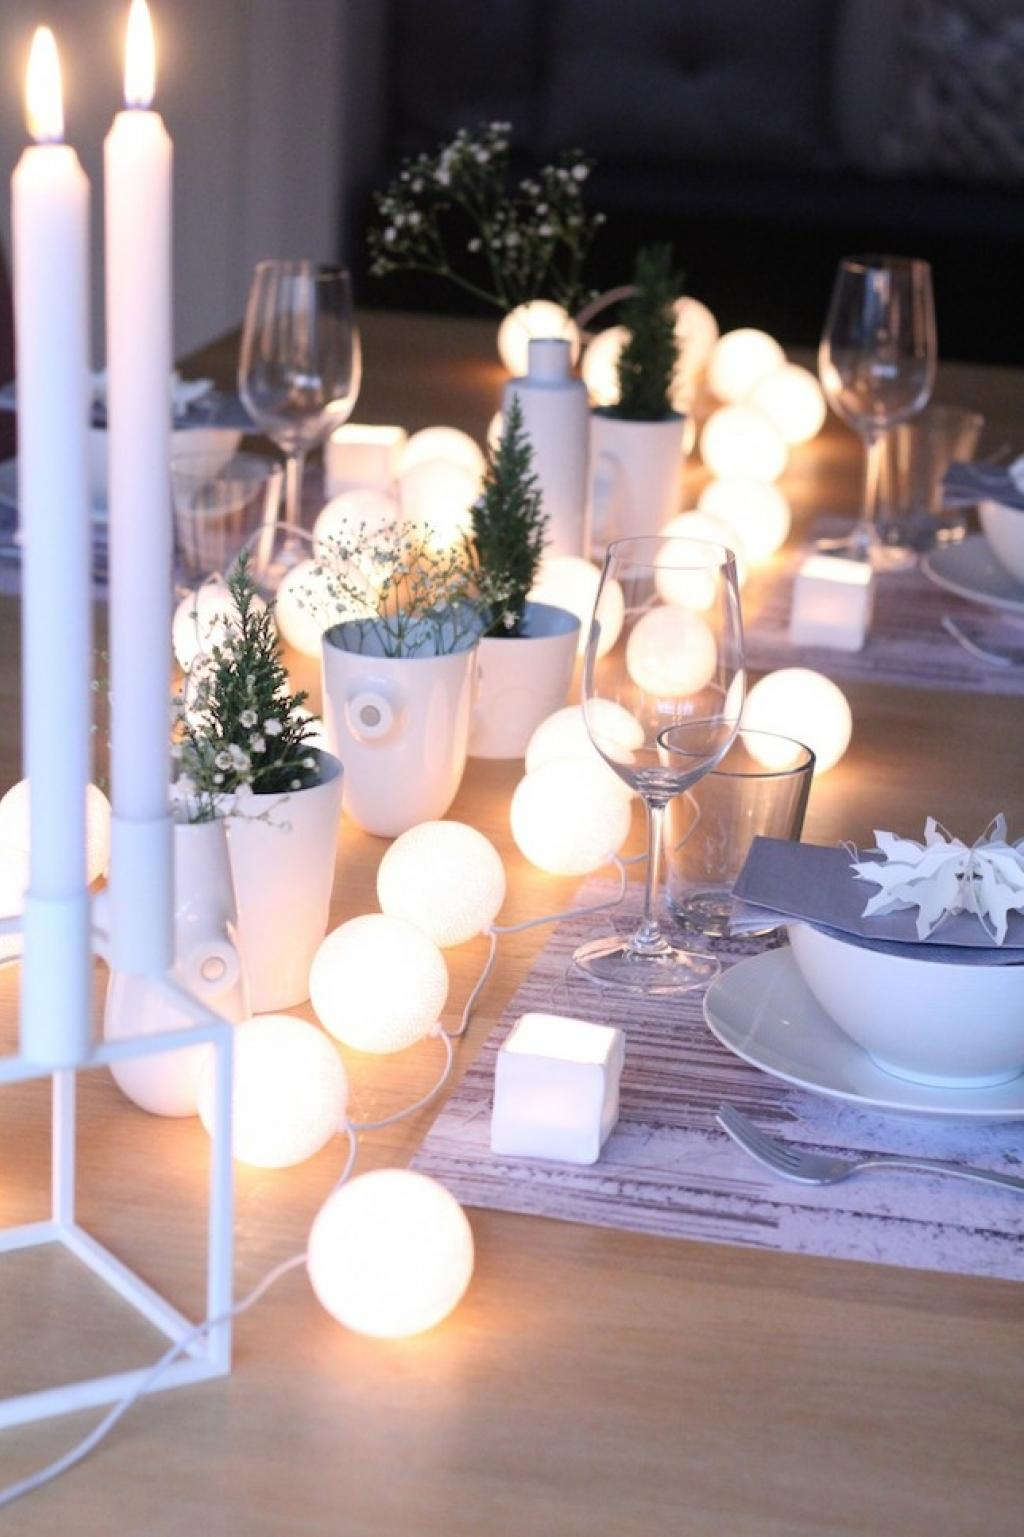 Miniature White Christmas & 50 Best DIY Christmas Table Decoration Ideas for 2018